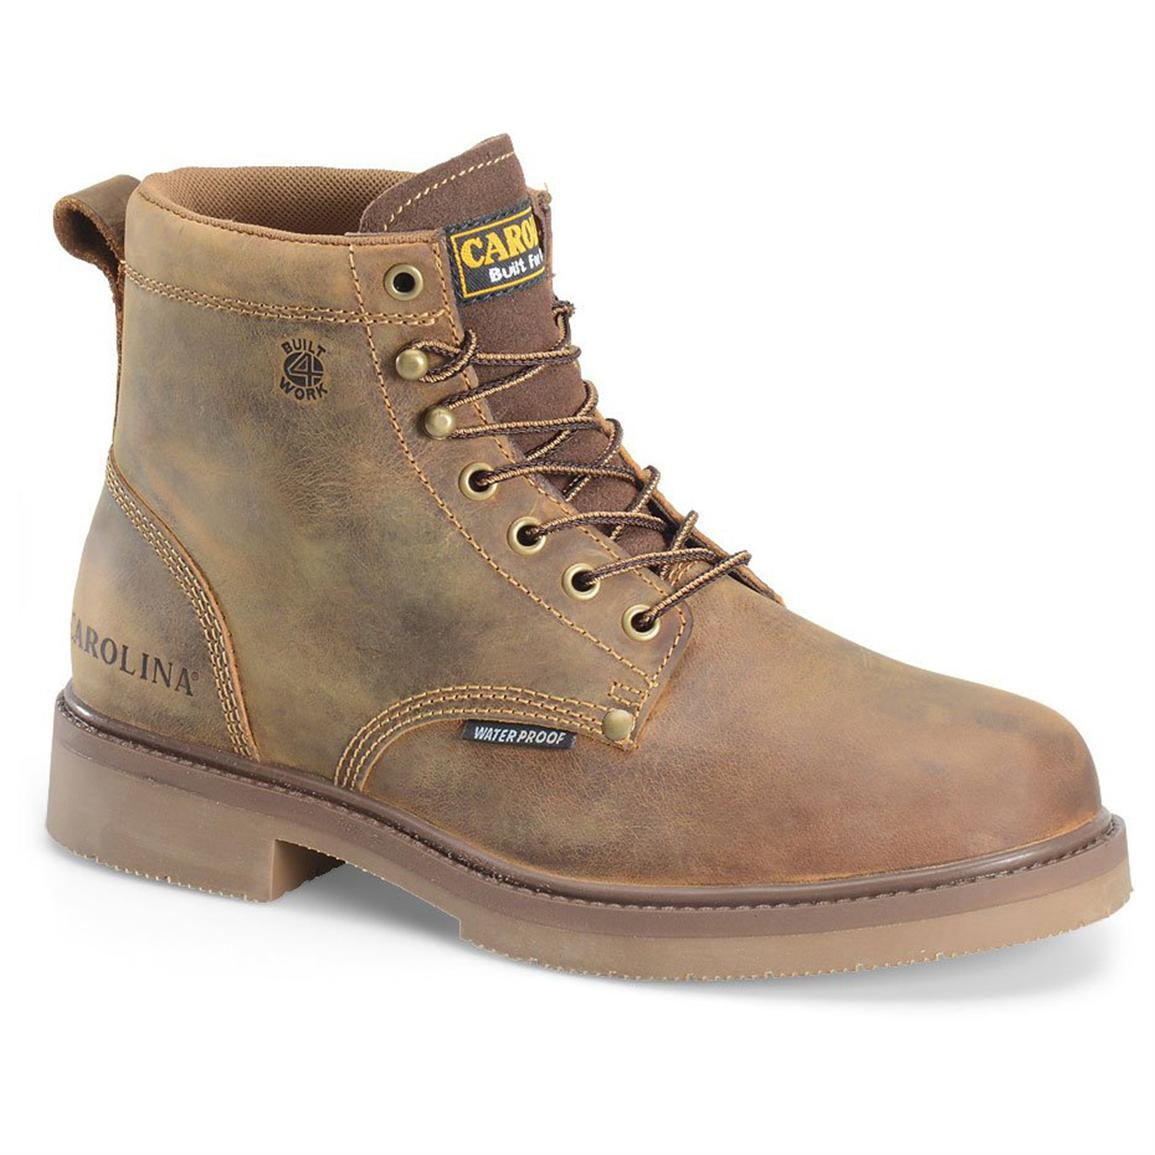 Men's Carolina 6 inch Steel Toe Smooth Sole Waterproof Work Boots, Old Town Folklore